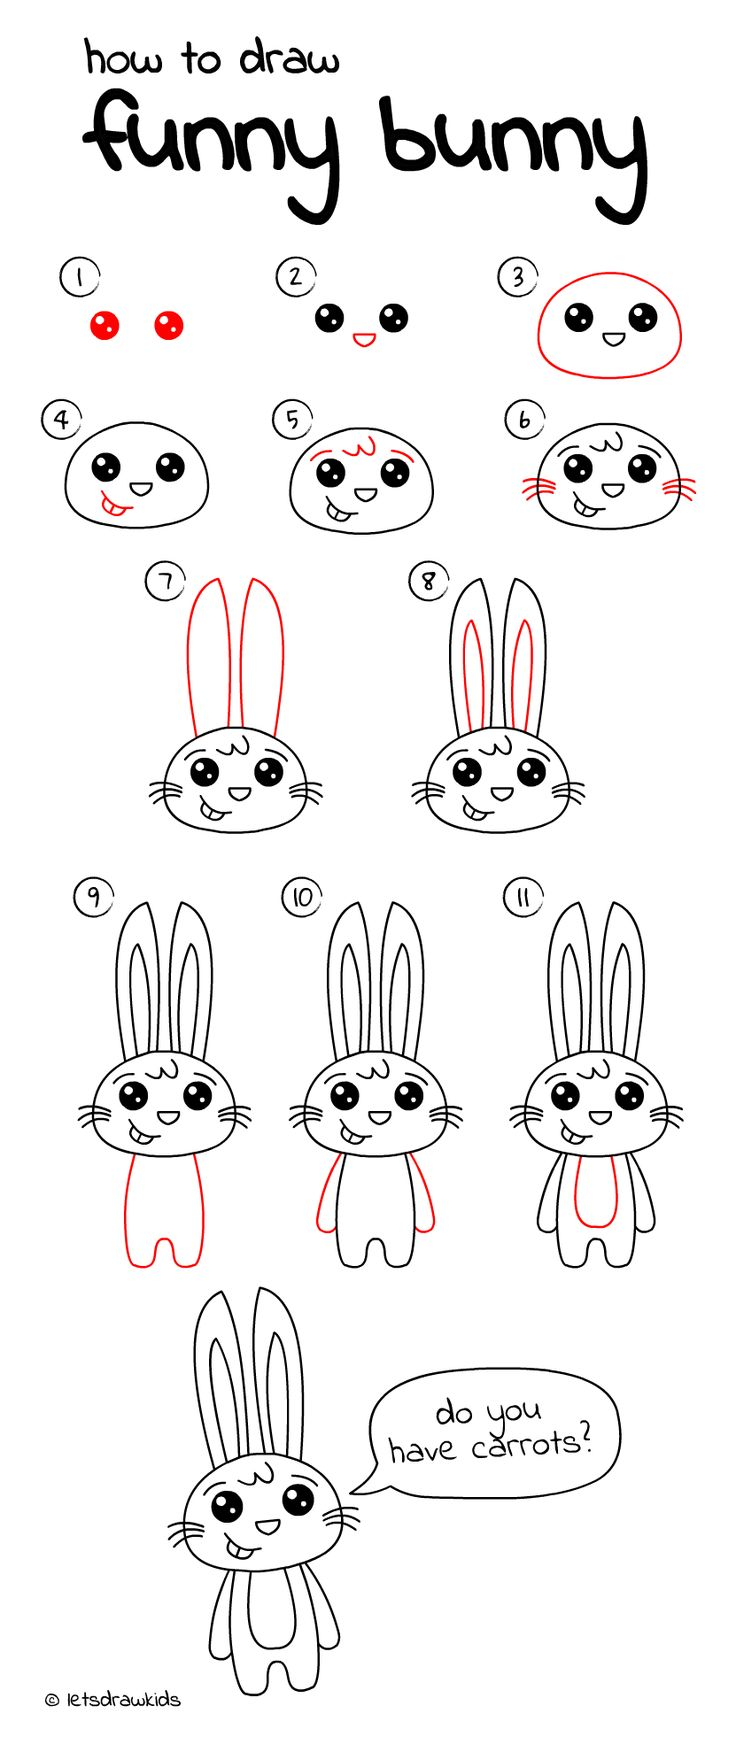 Uncategorized How To Drawing For Kids best 25 drawing for kids ideas on pinterest easy drawings how to draw funny bunny step by perfect kids